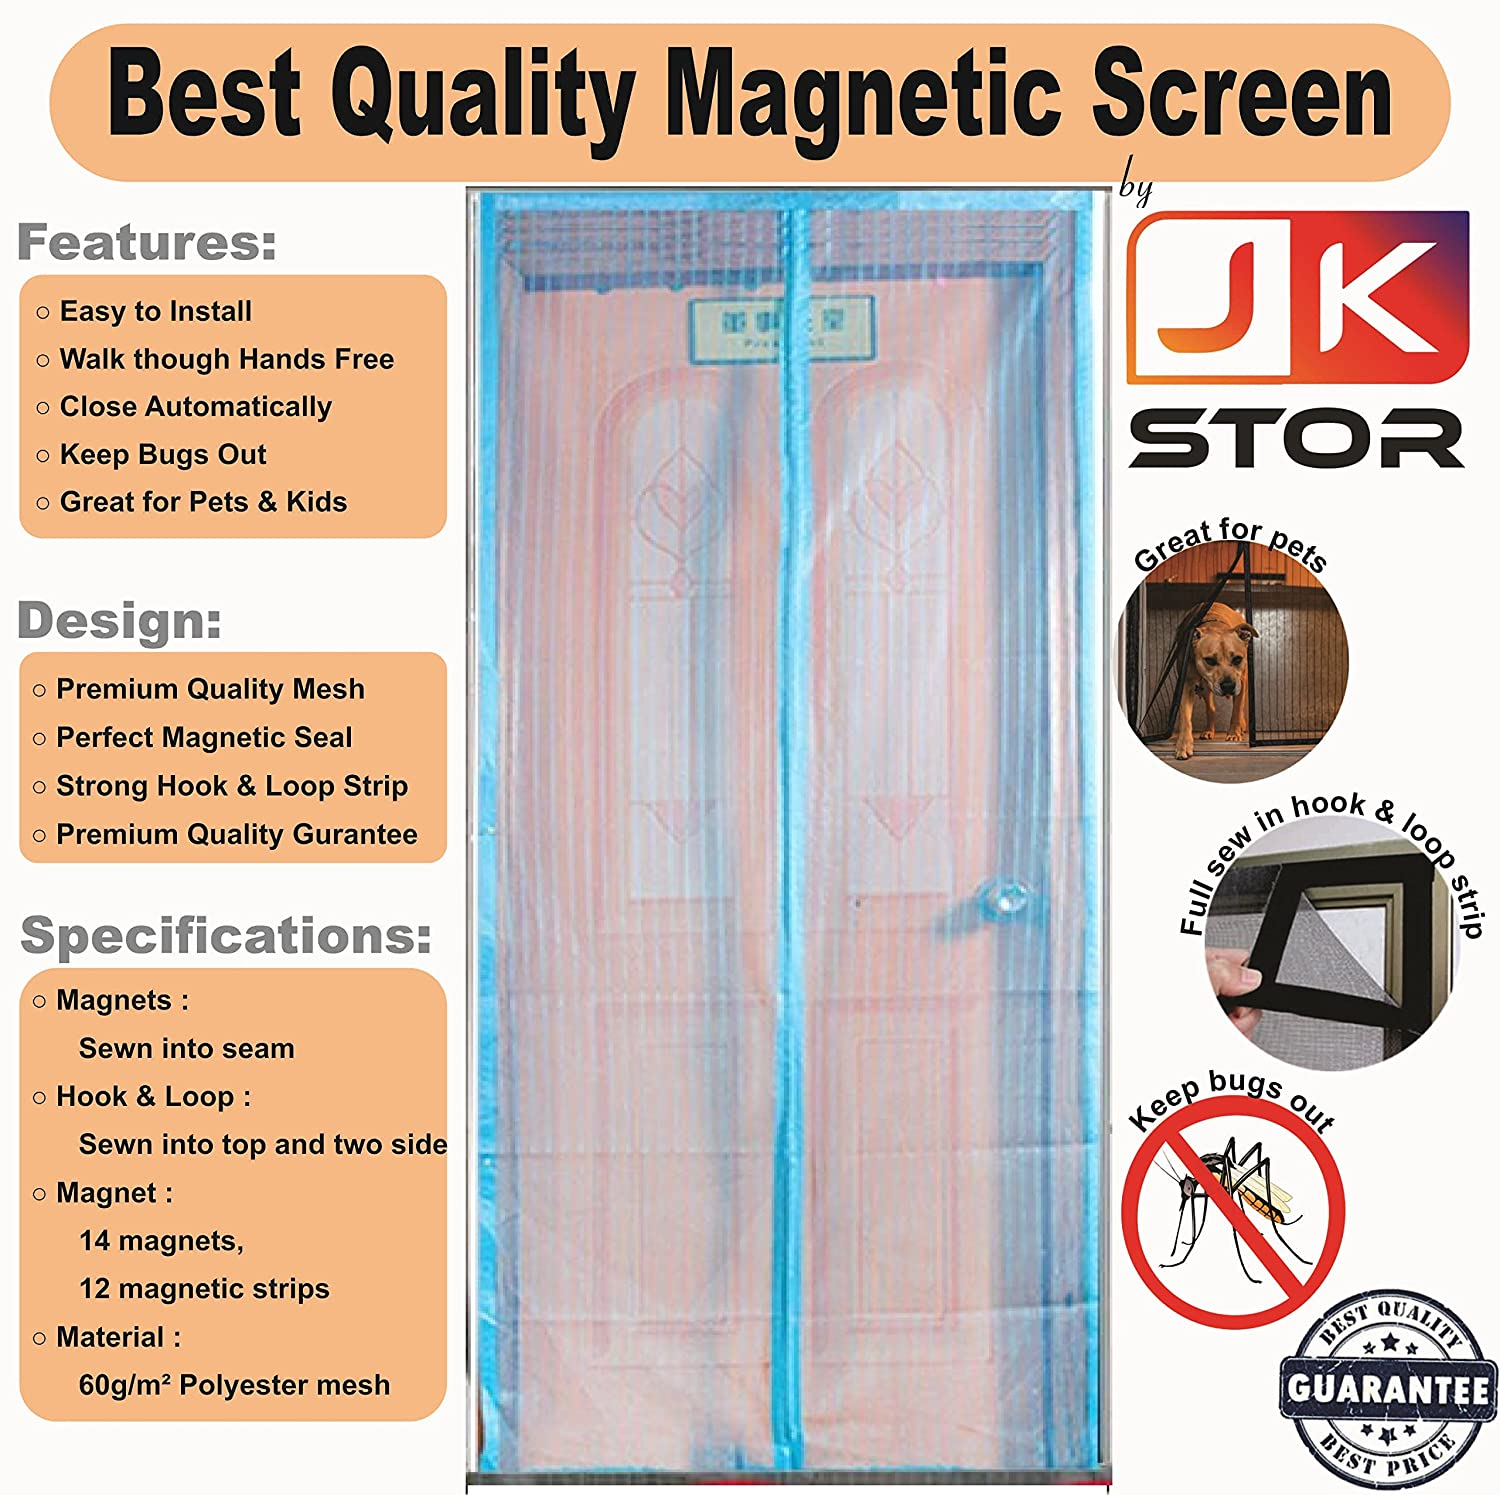 Premium Quality Magnetic Screen Door Full Frame Hook 7 Loop - Keep Bugs Out Lets Fresh Air In. No More Mosquitos or Flying Insects - Children and Pet Friendly, Instant Bug Mesh with Top-to-Bottom Seal, Snaps Shut Like Magic for a Hands-Free Bug-Proof Curta